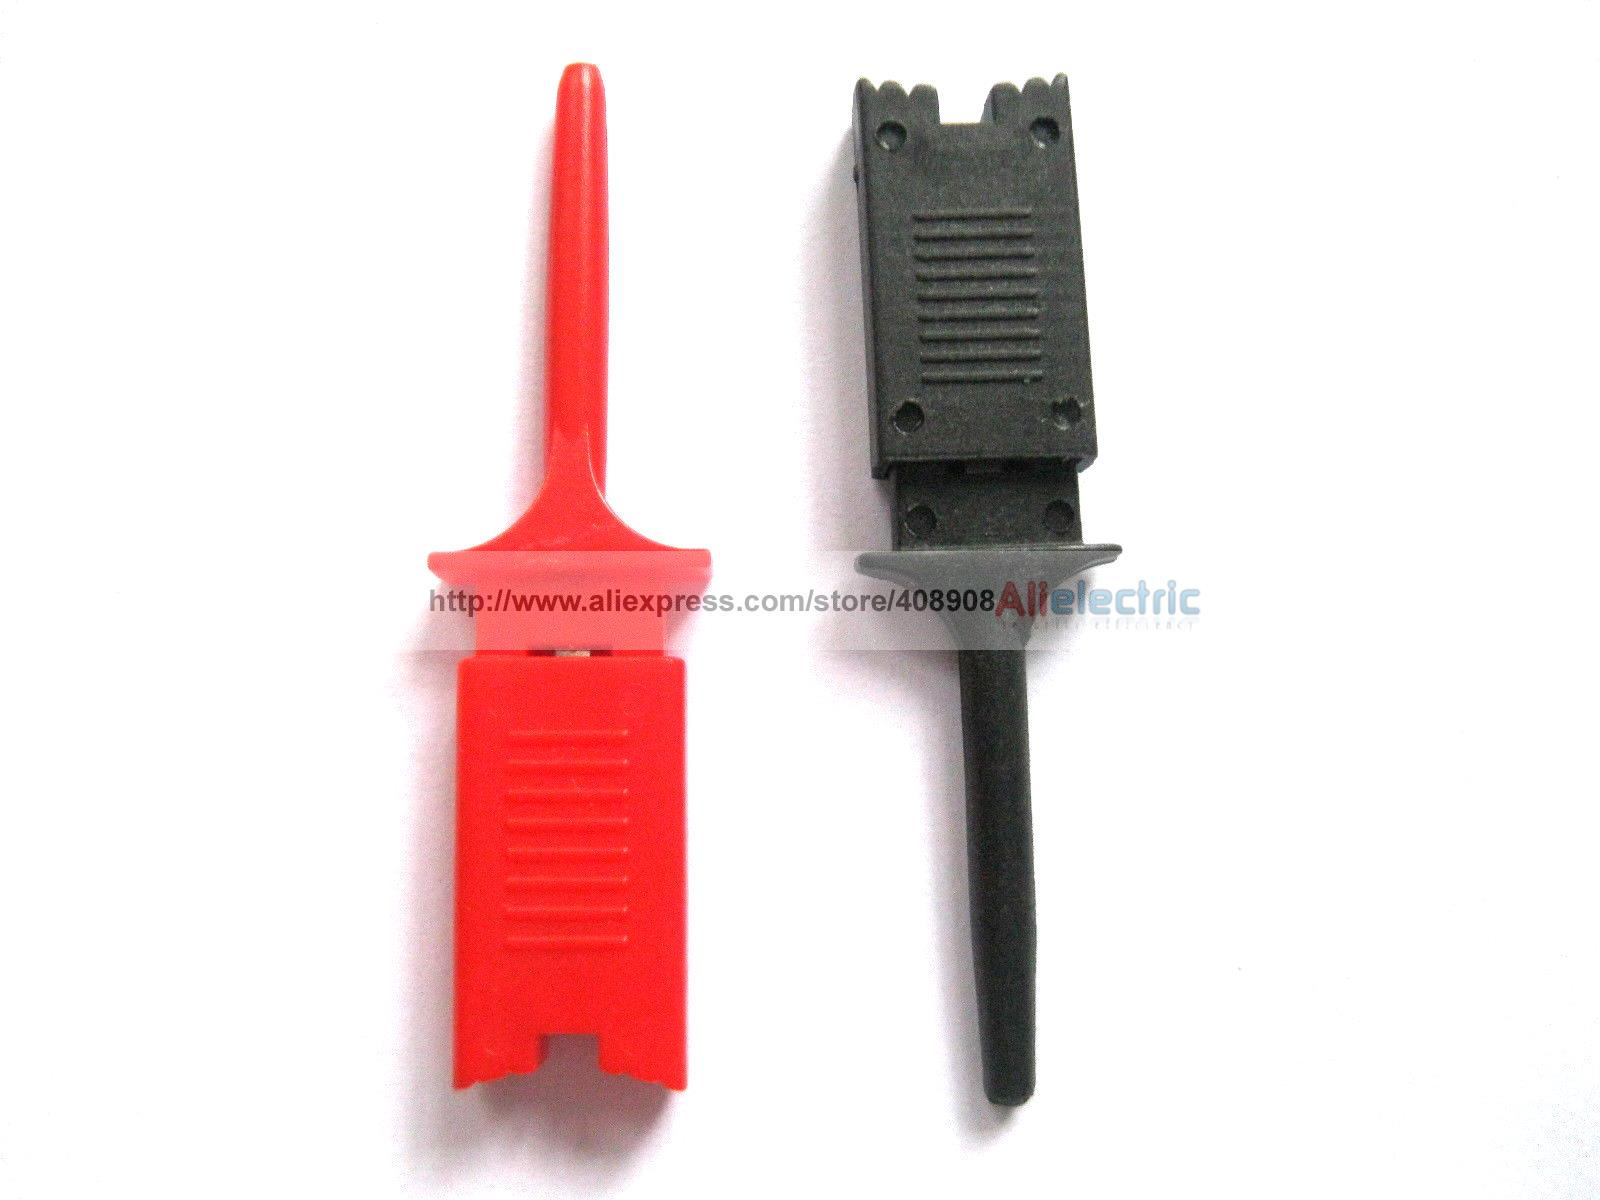 100 Pcs Flat Small Test Clip for Multimeter Red Black